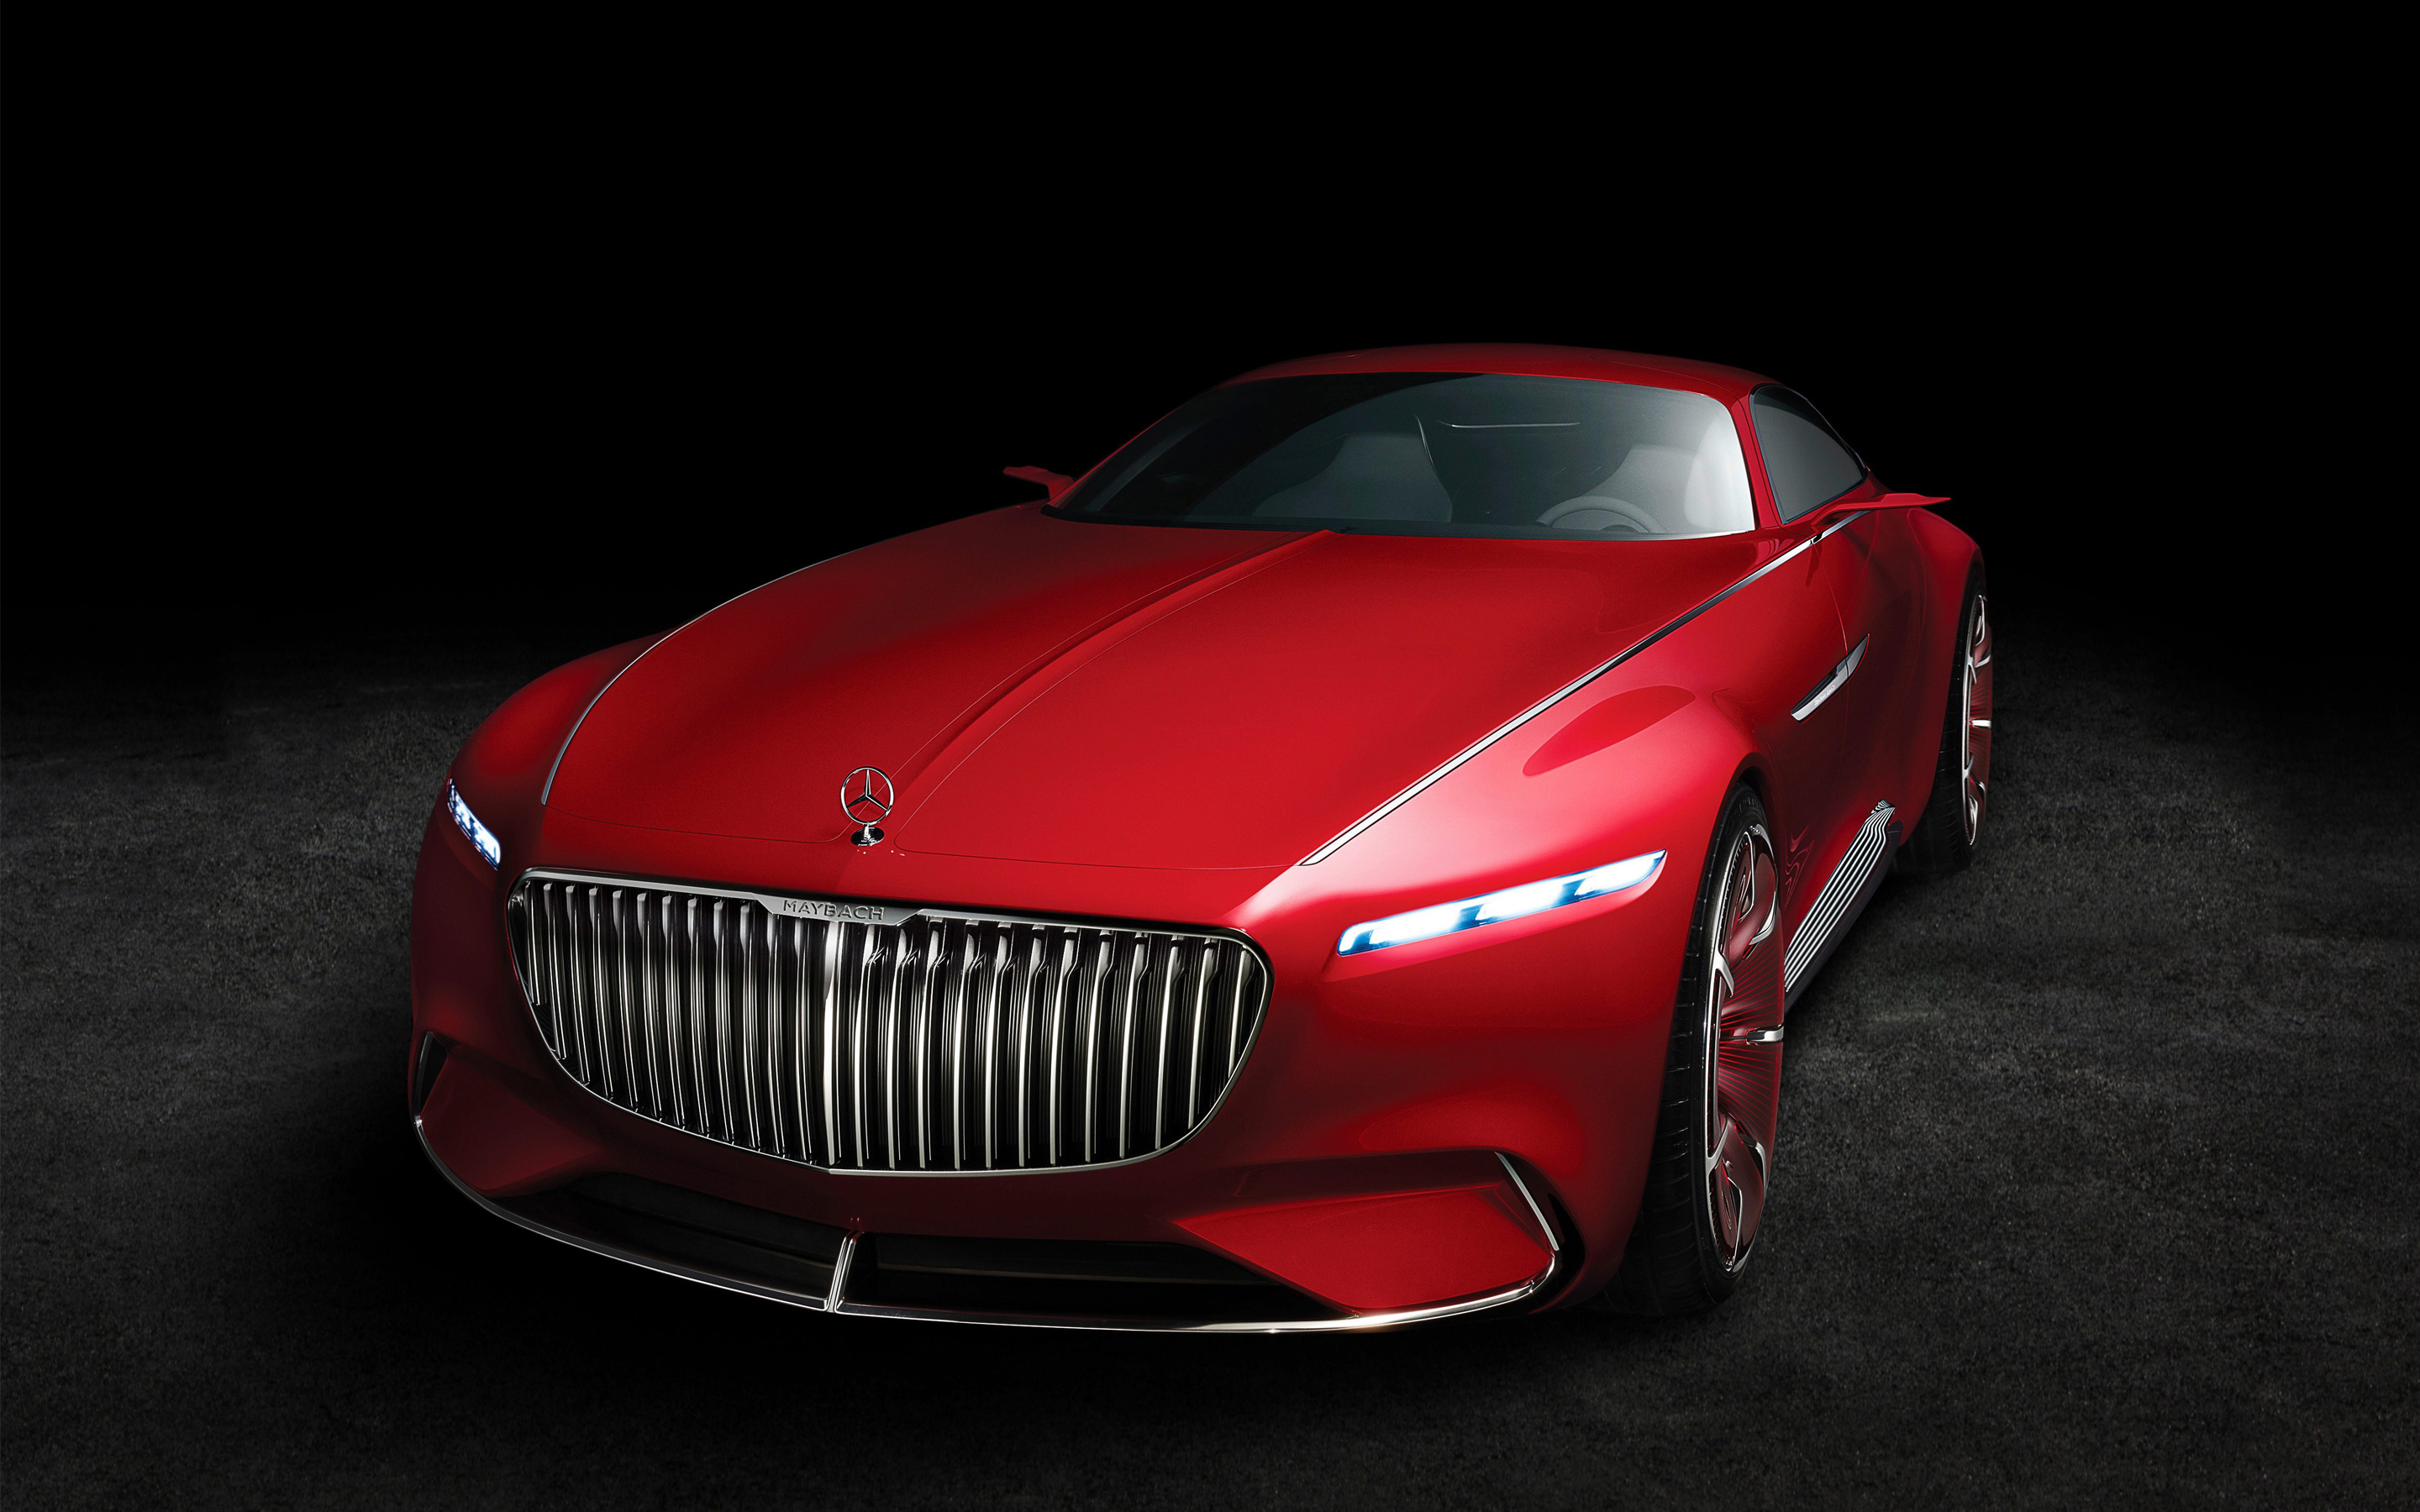 Vision Mercedes Maybach 6 4k Wallpaper Hd Car Wallpapers Id 6922